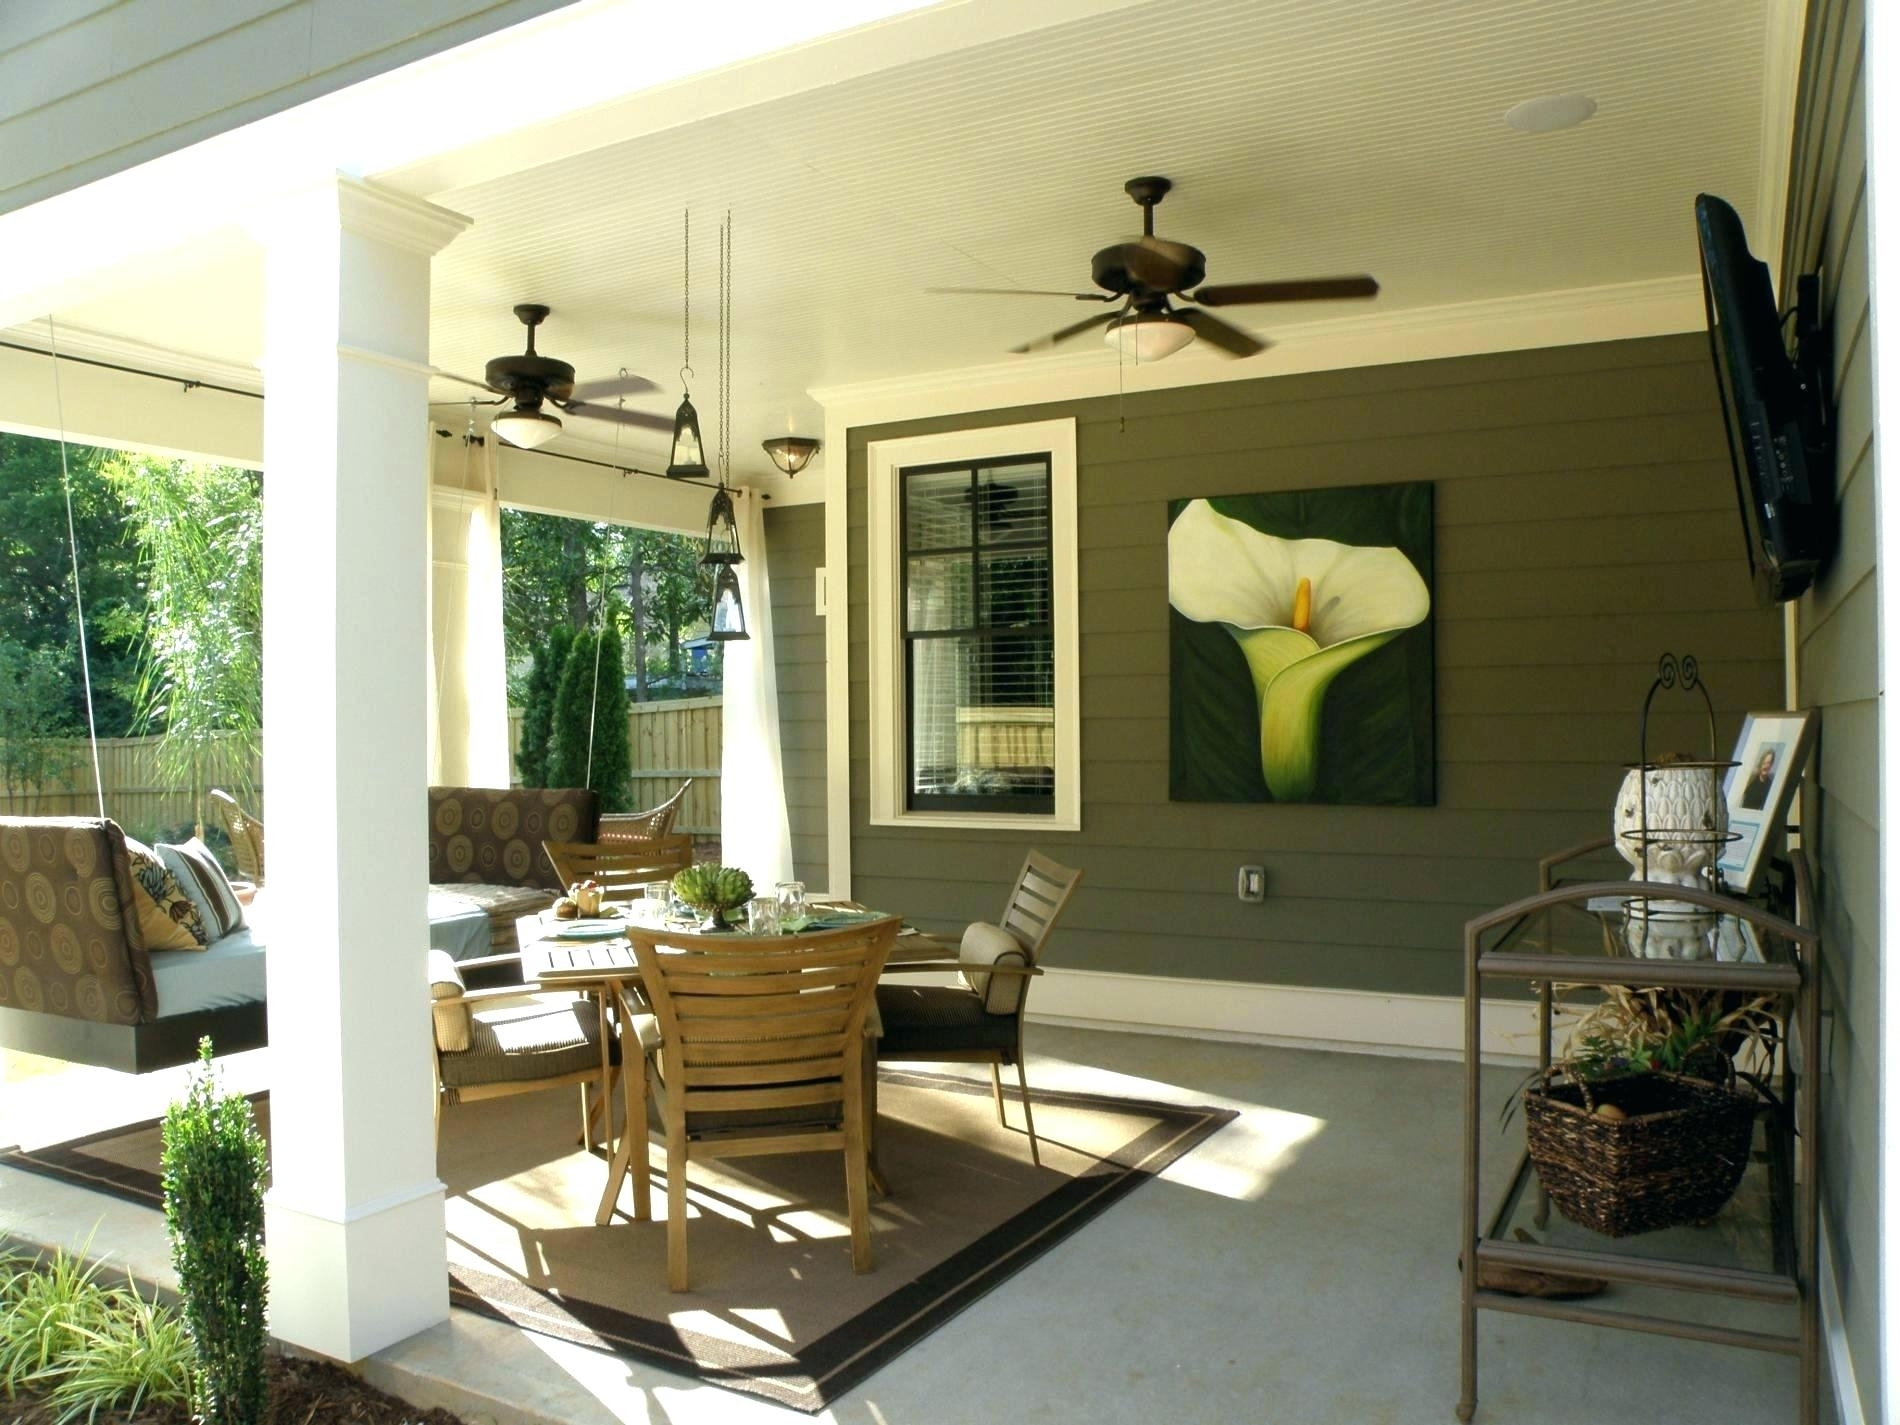 Front Porch Ceiling Light Ths Pated S Lights Outdoor – Pszczelawola With Outdoor Front Porch Ceiling Lights (#4 of 15)